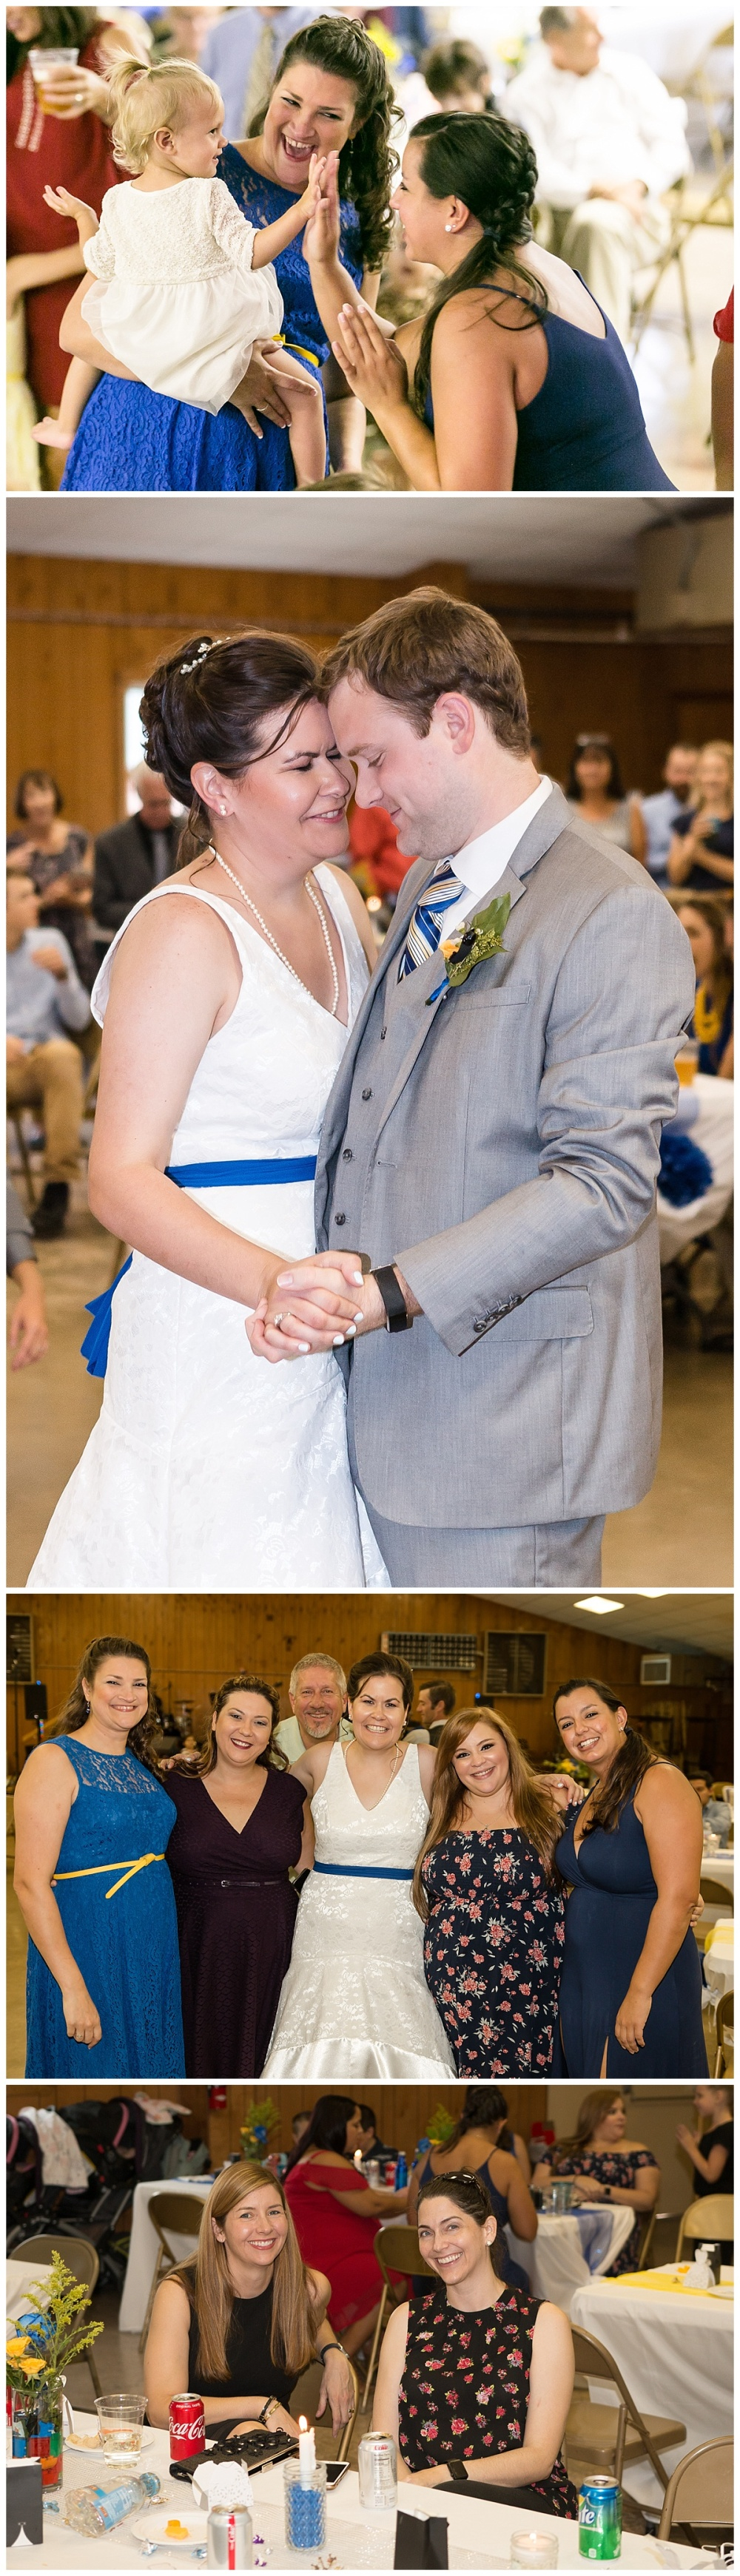 Texas-Wedding-Photographer-La-Coste-Our-Lady-Of-Grace-Church-Bride-Groom-Lego-Theme-Carly-Barton-Photography_0085.jpg